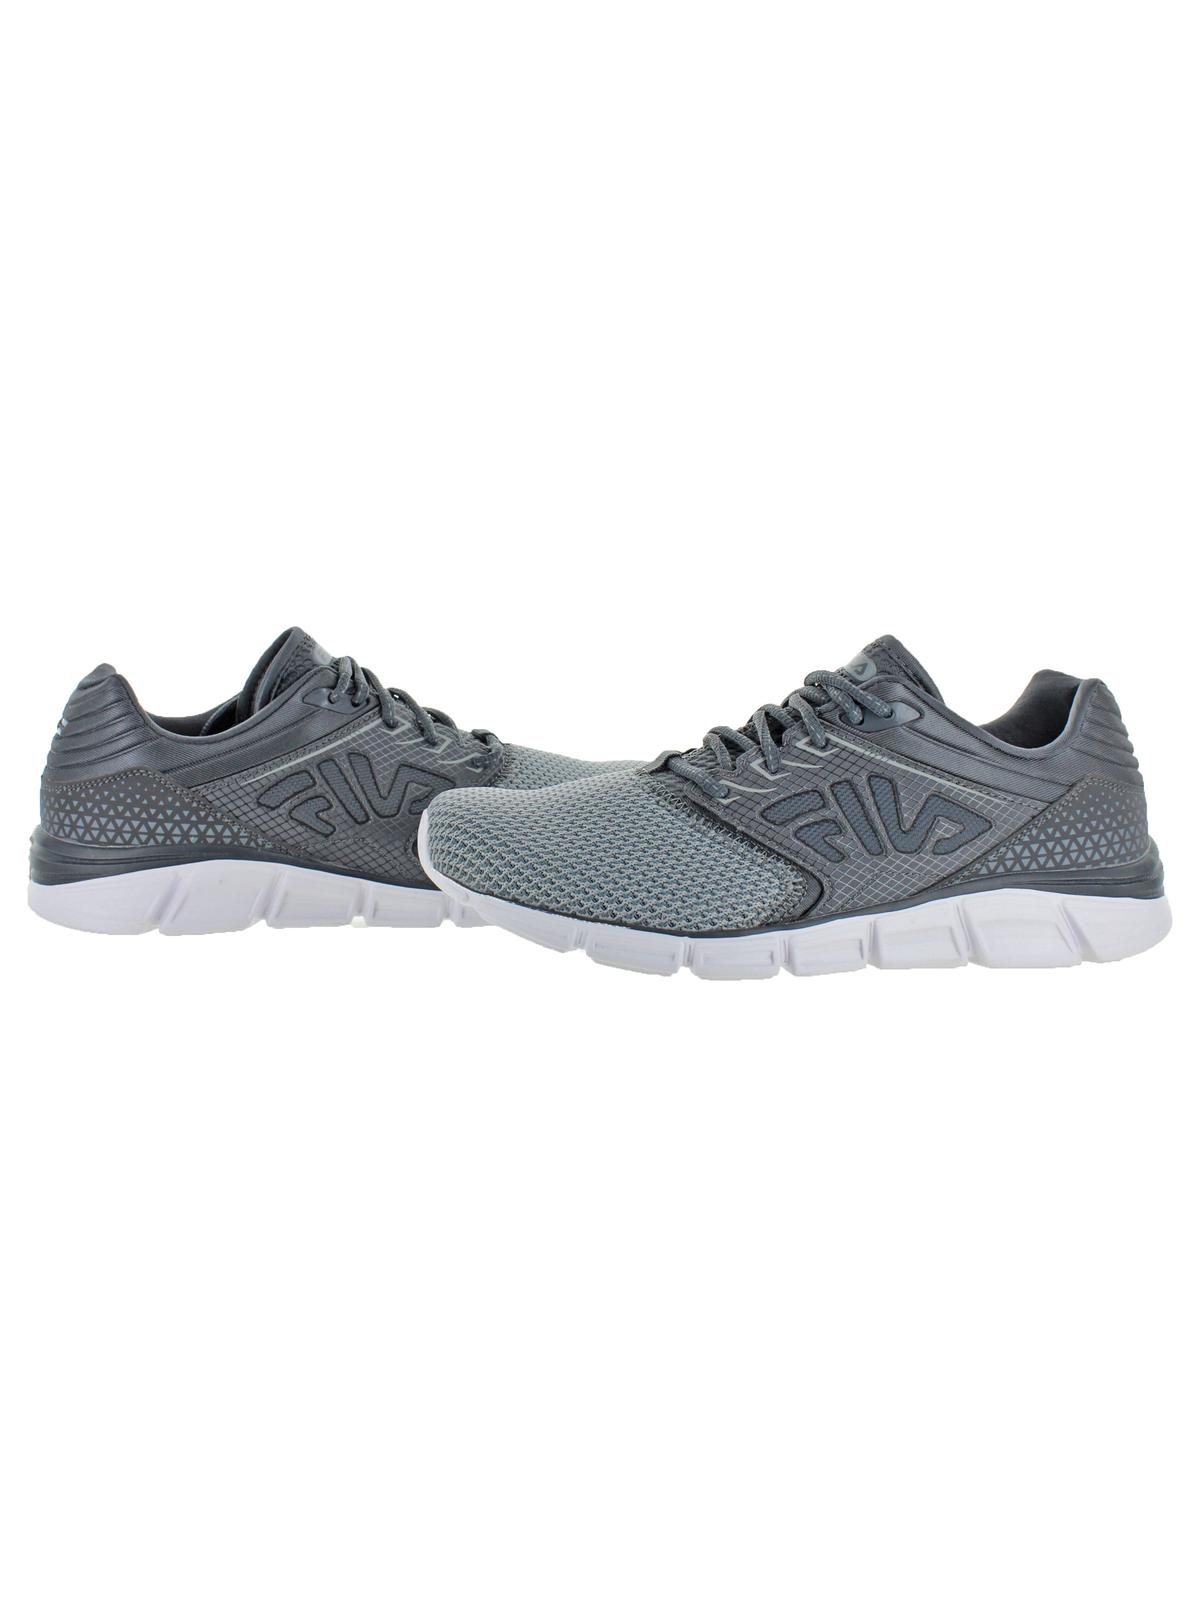 e181c7d85b31 Fila - Fila Mens Memory Multiswift 2 Athletic Trainer Running Shoes -  Walmart.com